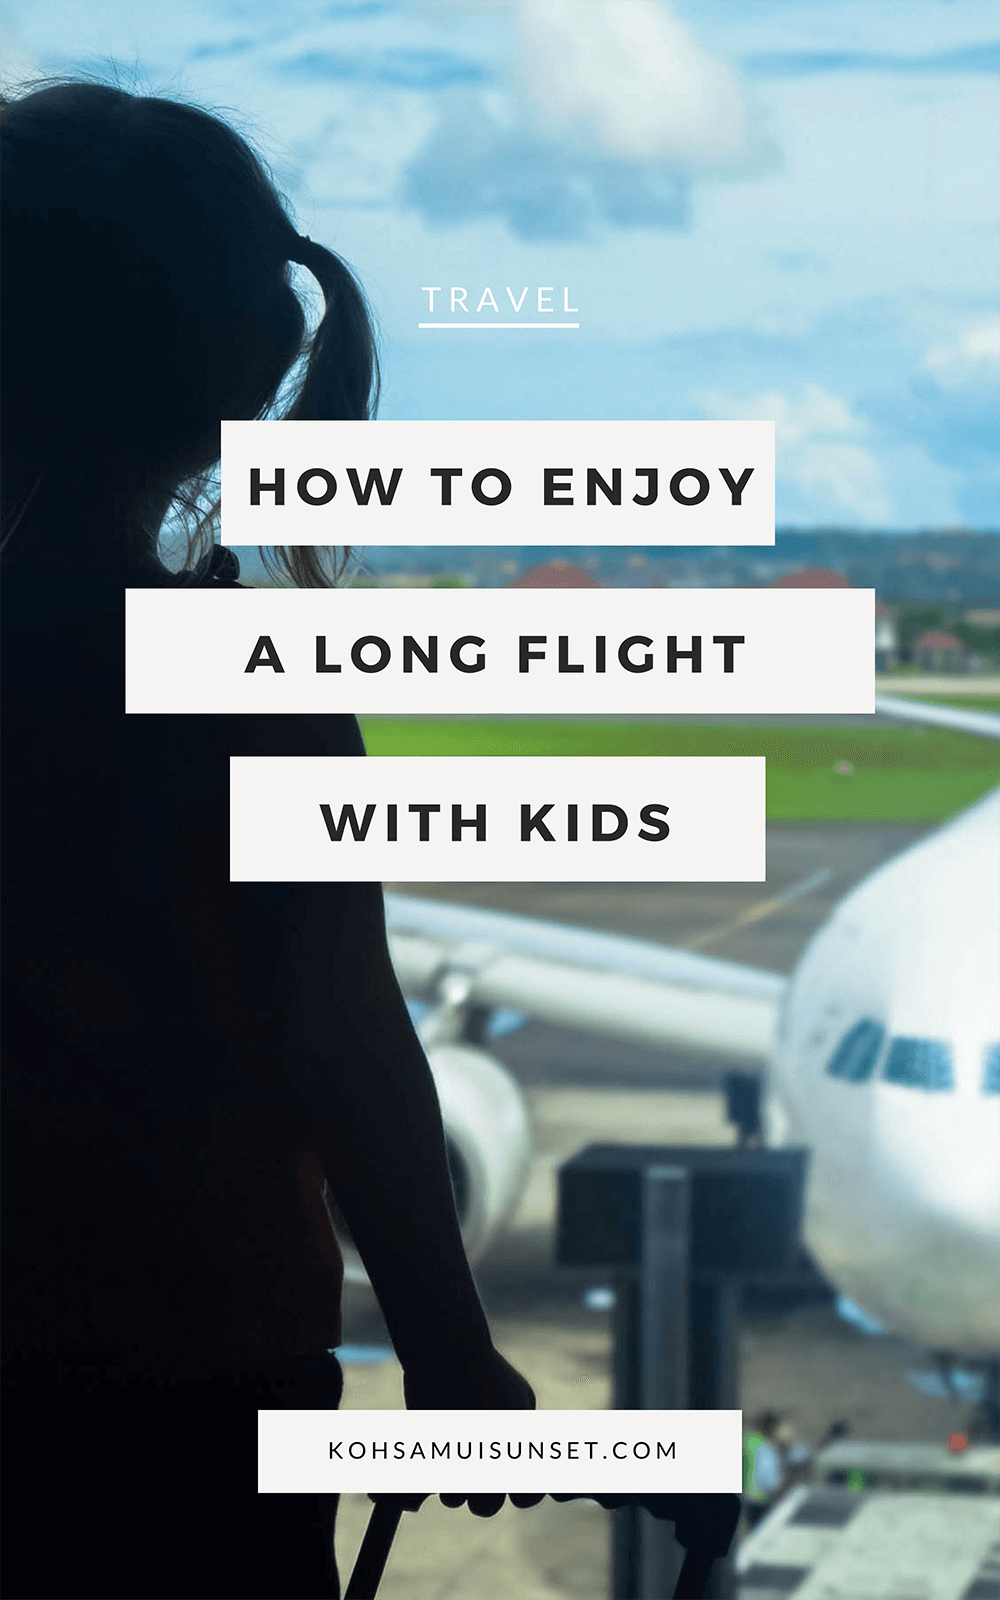 12 Must-Read Tips to Enjoy a Long Flight with Children: Discover 12 tips to enjoy a long flight with children: the best tips for long-haul flights with kids including packing, snacks, strollers, games and BRIBES! | #travel #kids #flying #familytravel